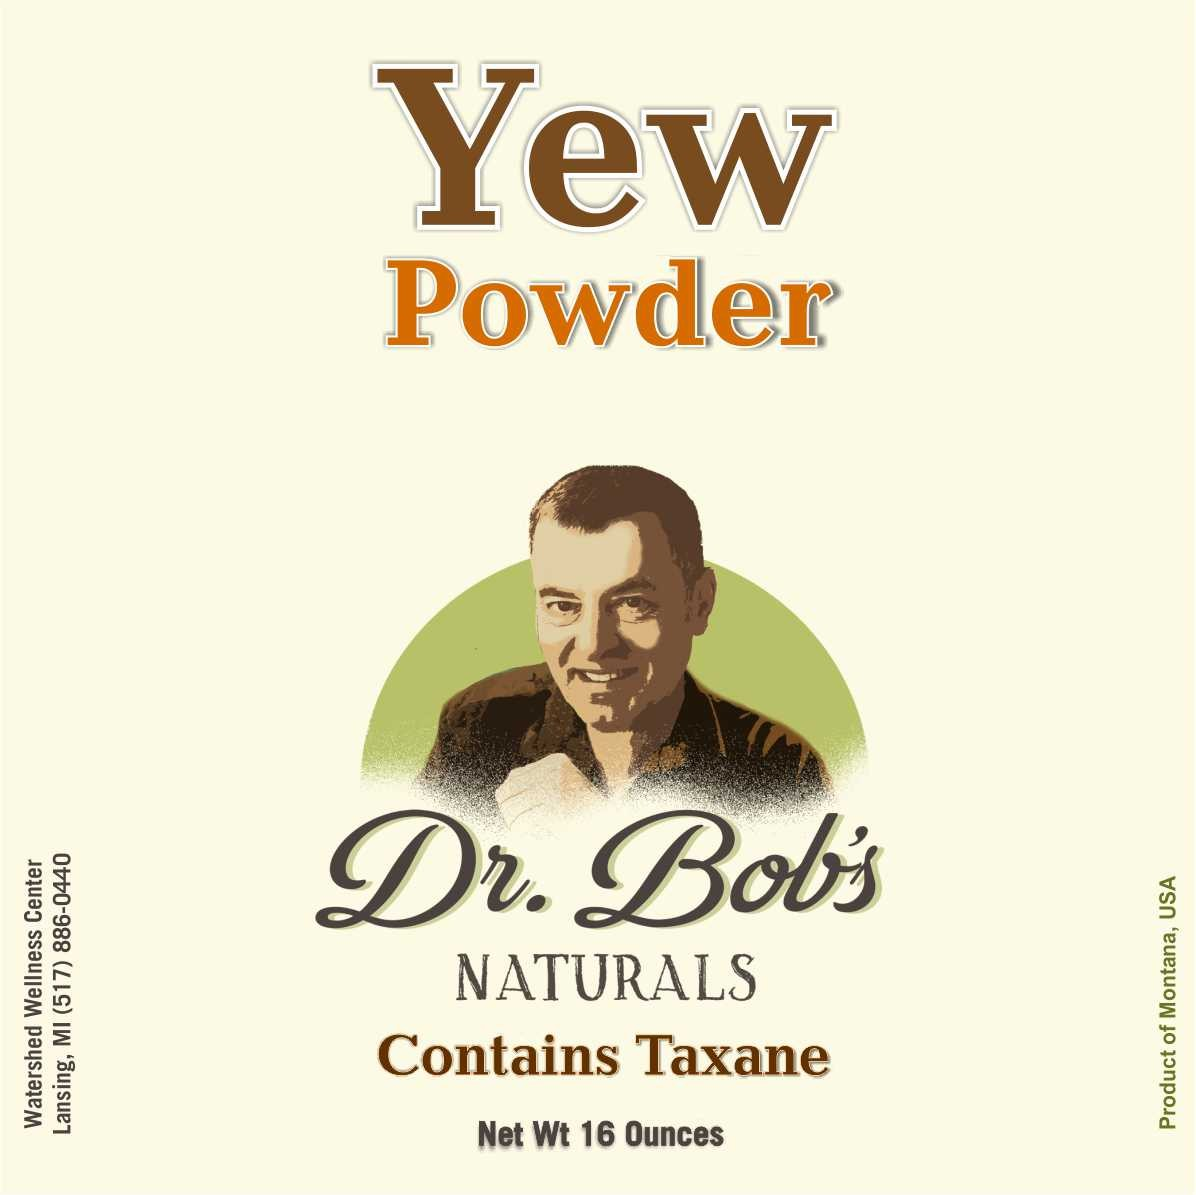 Yew Powder